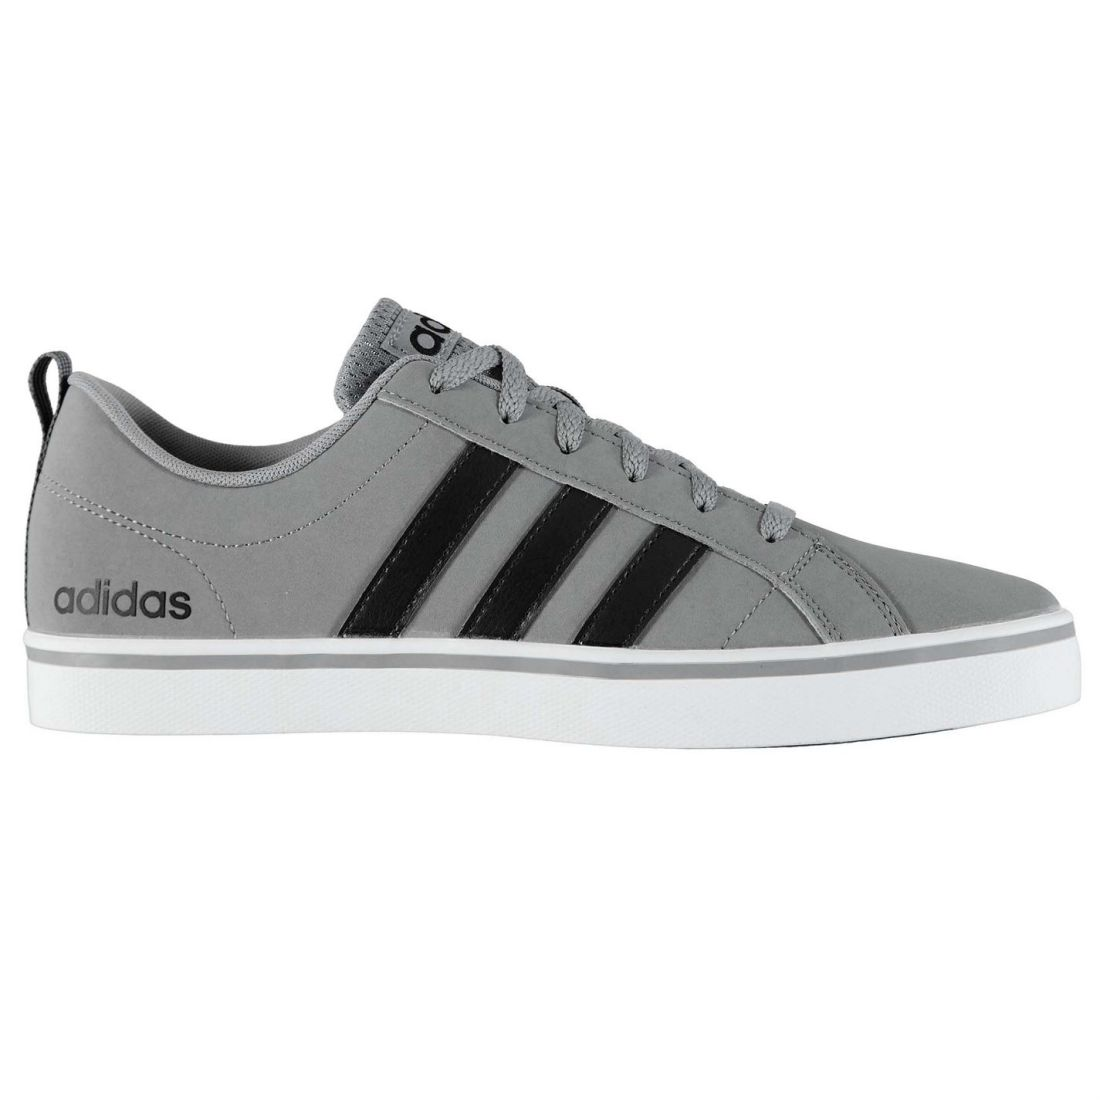 buy popular 7e3b8 7e262 Image is loading adidas-Mens-Gents-Pace-VS-Nubuck-Trainers-Shoes-